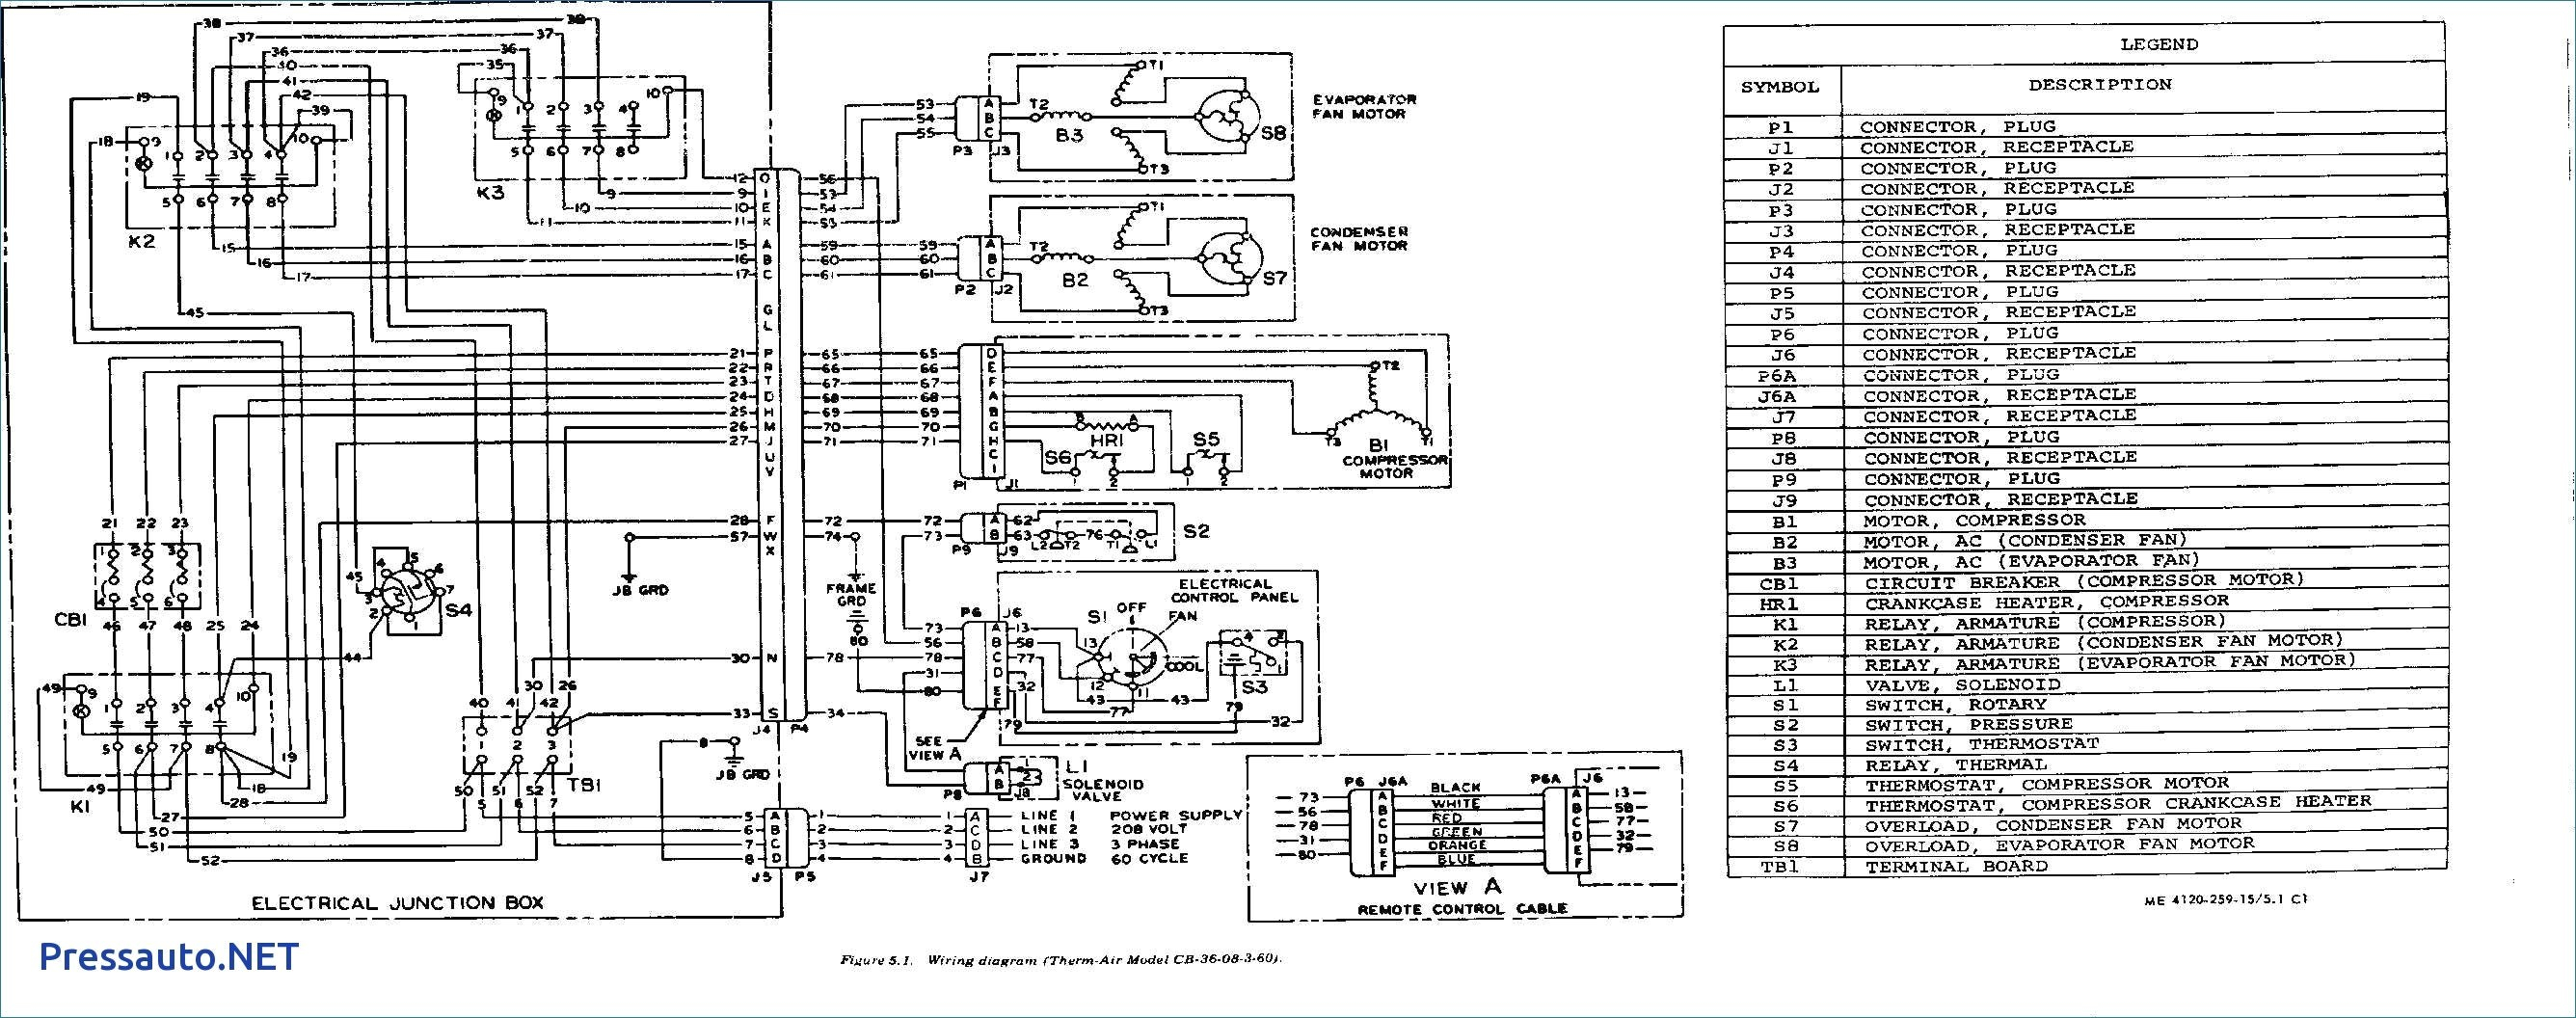 Trane Hvac System Wiring Diagram Schematics Diagrams Split Wire Data Schema U2022 Rh 207 246 81 240 Weathertron